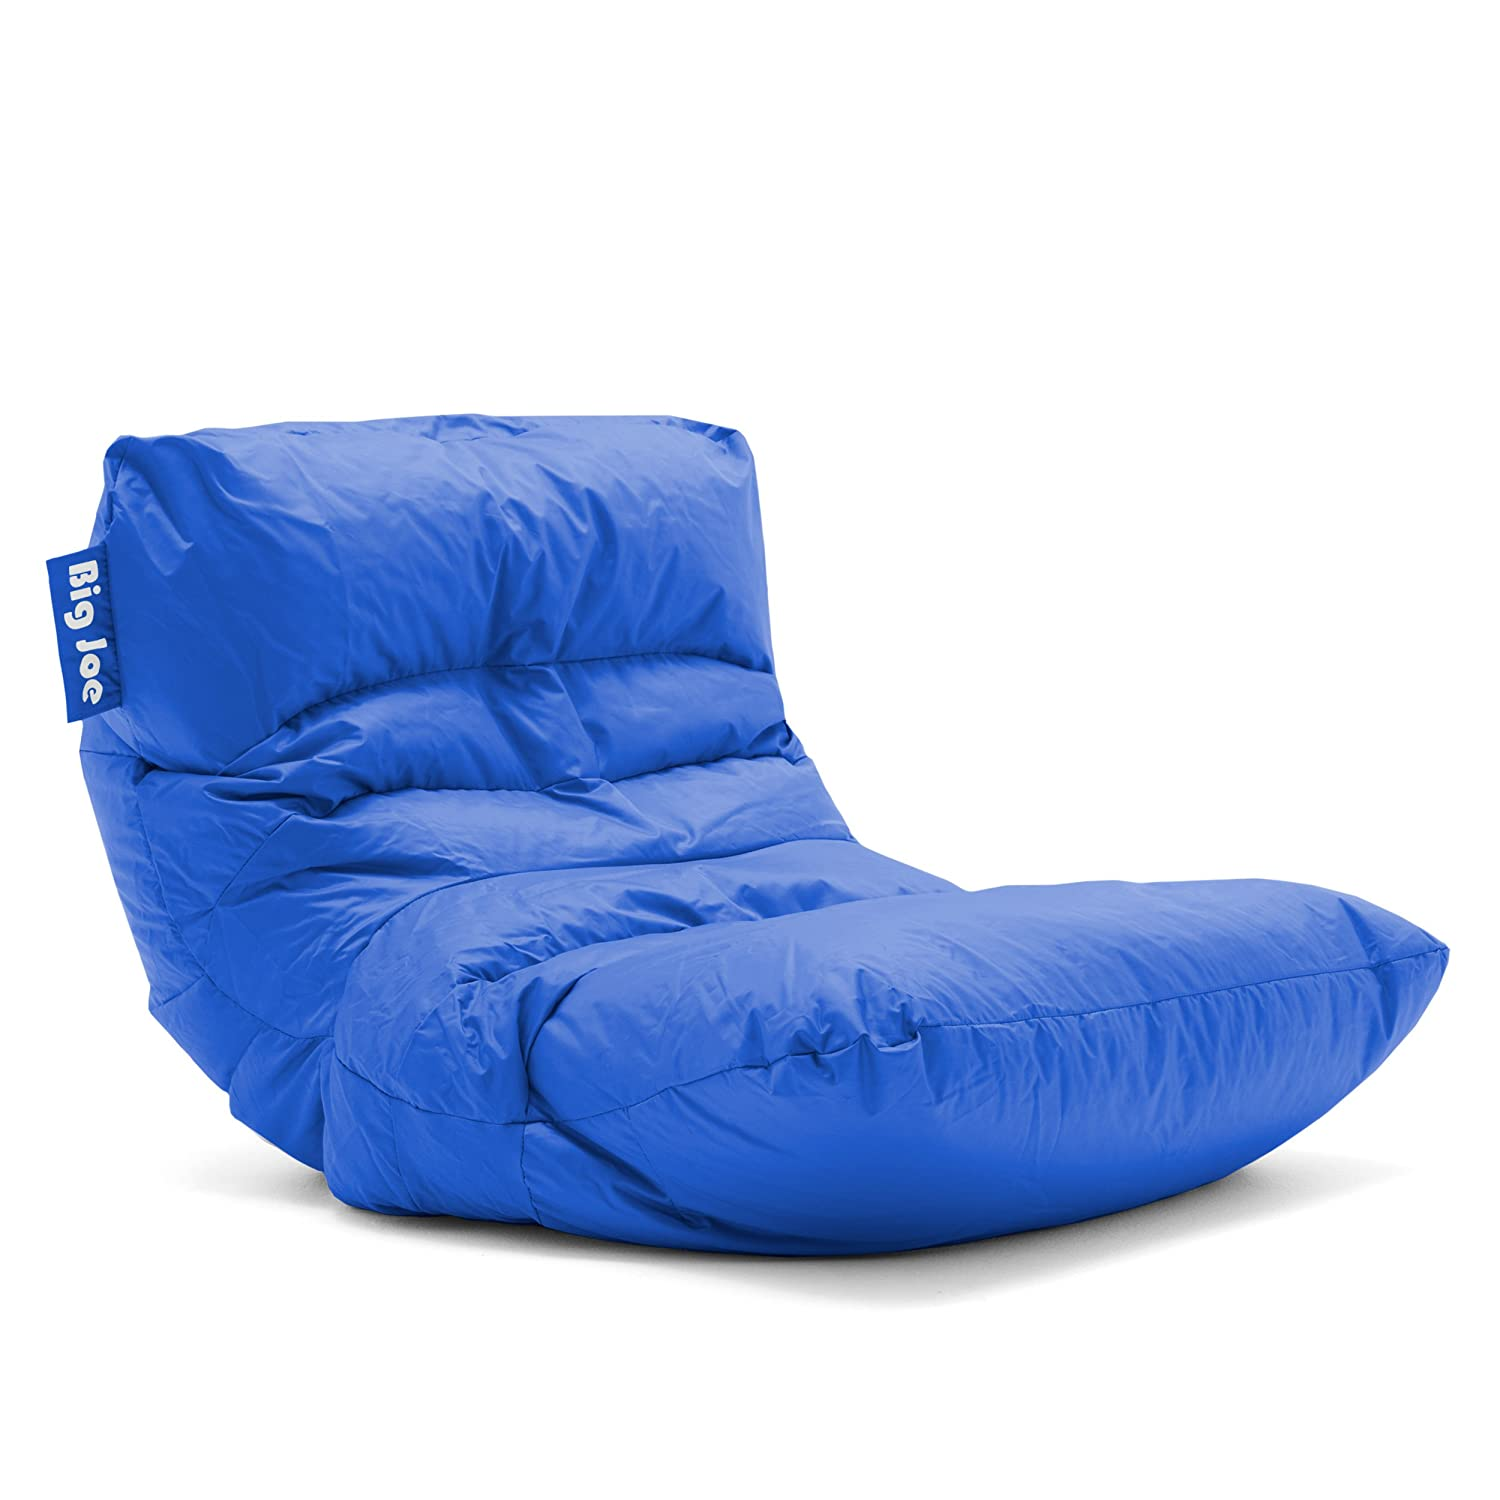 Big joe bean bag chair blue - Big Joe Bean Bag Chair Blue 29